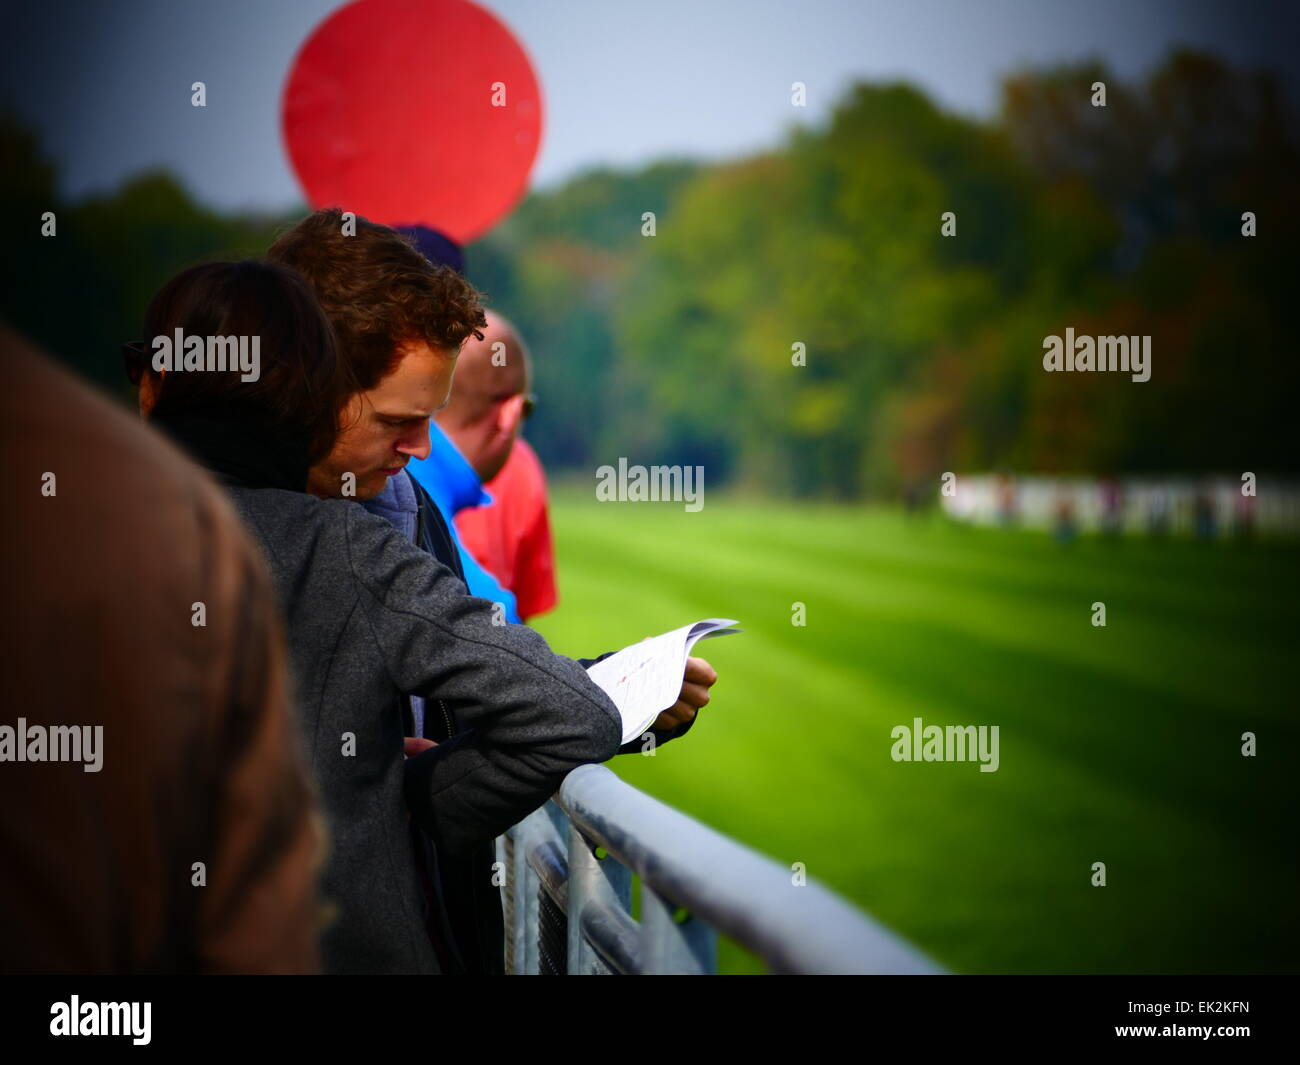 People at Track studing racing program Horse Race Racing - Stock Image